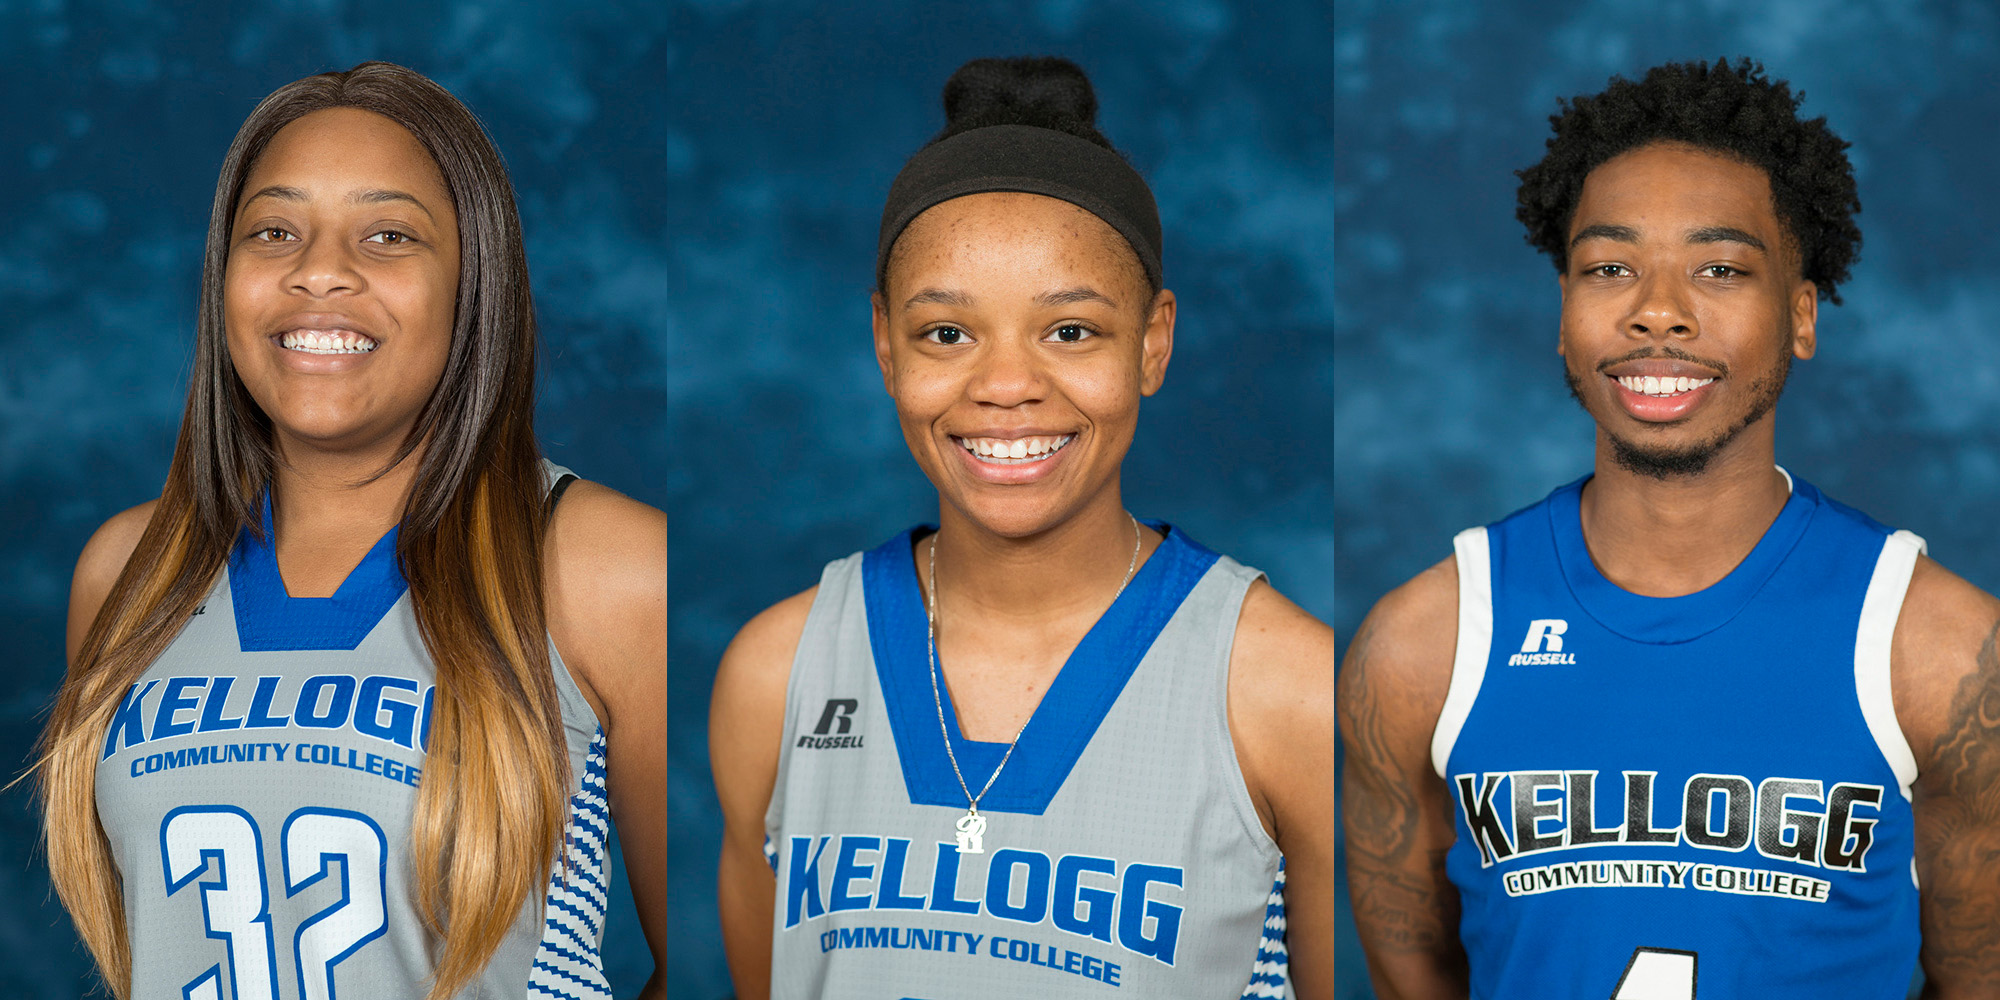 KCC basketball players Dareka Clayton, Destiny Kincaide and Khylen Watkins, who received Honorable Mention All-Conference honors from the MCCAA after the 2018 basketball season.